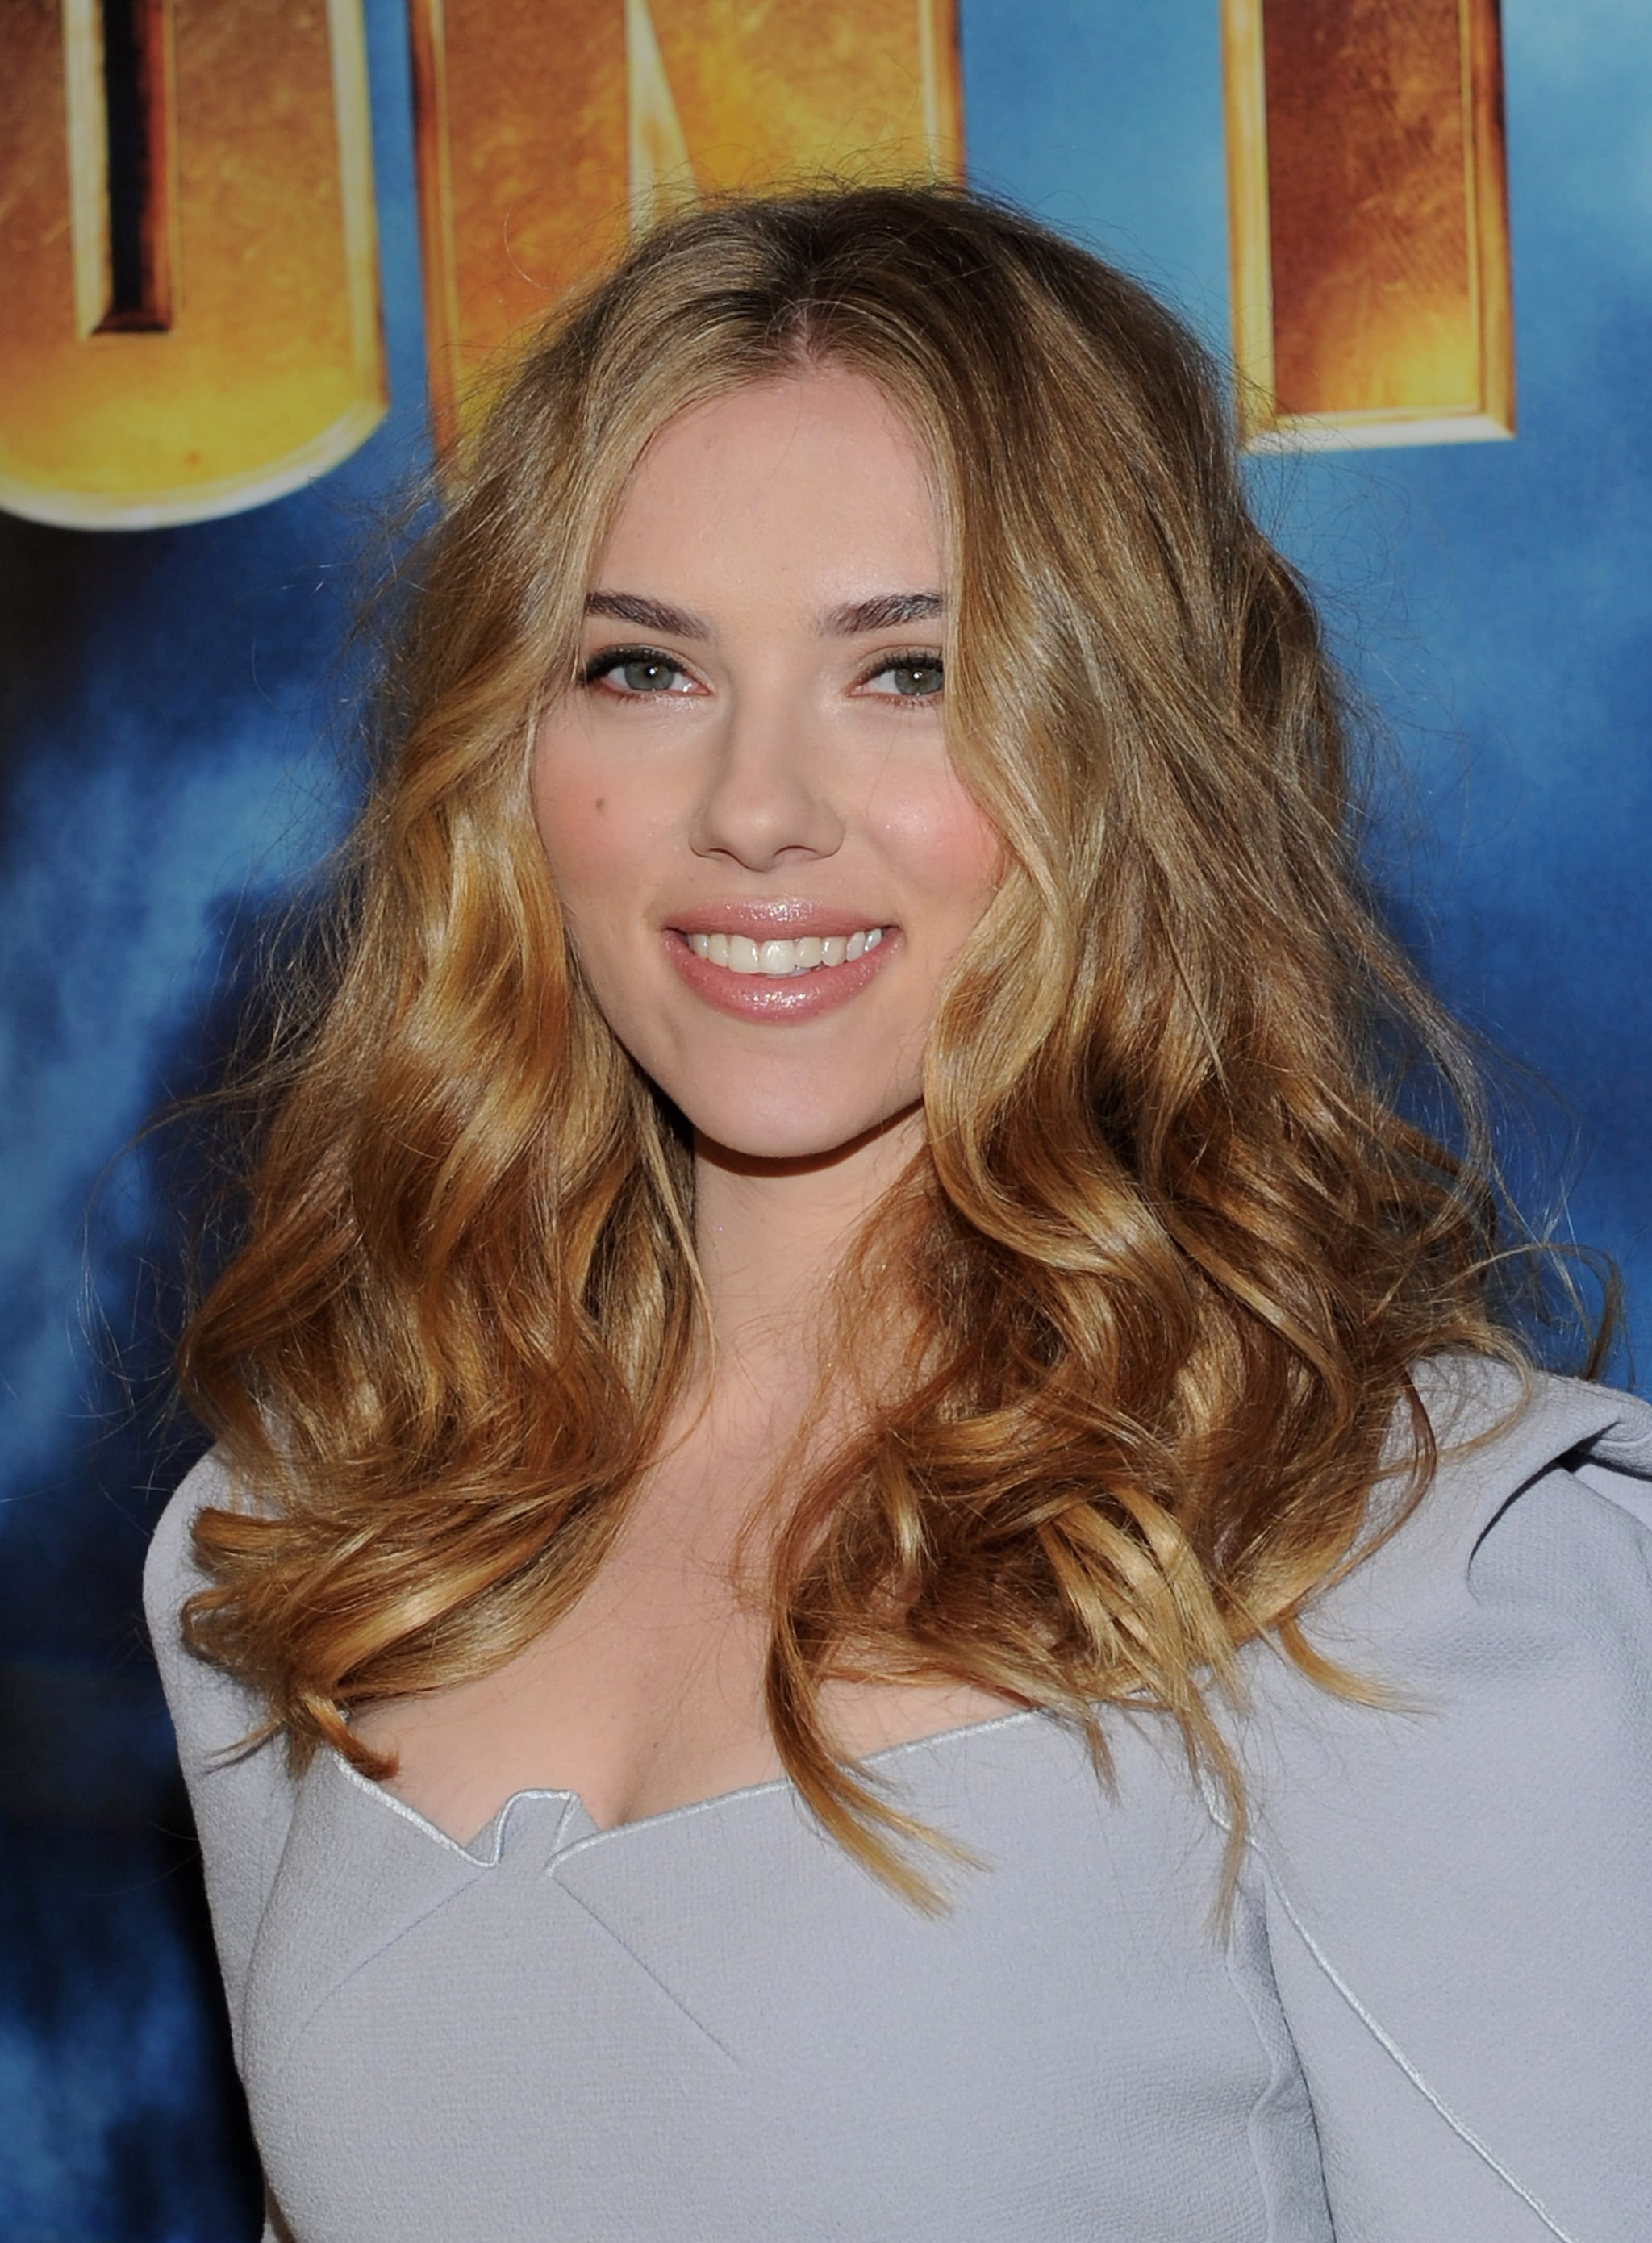 Pictures Of Scarlett Johansson Gwyneth Paltrow And